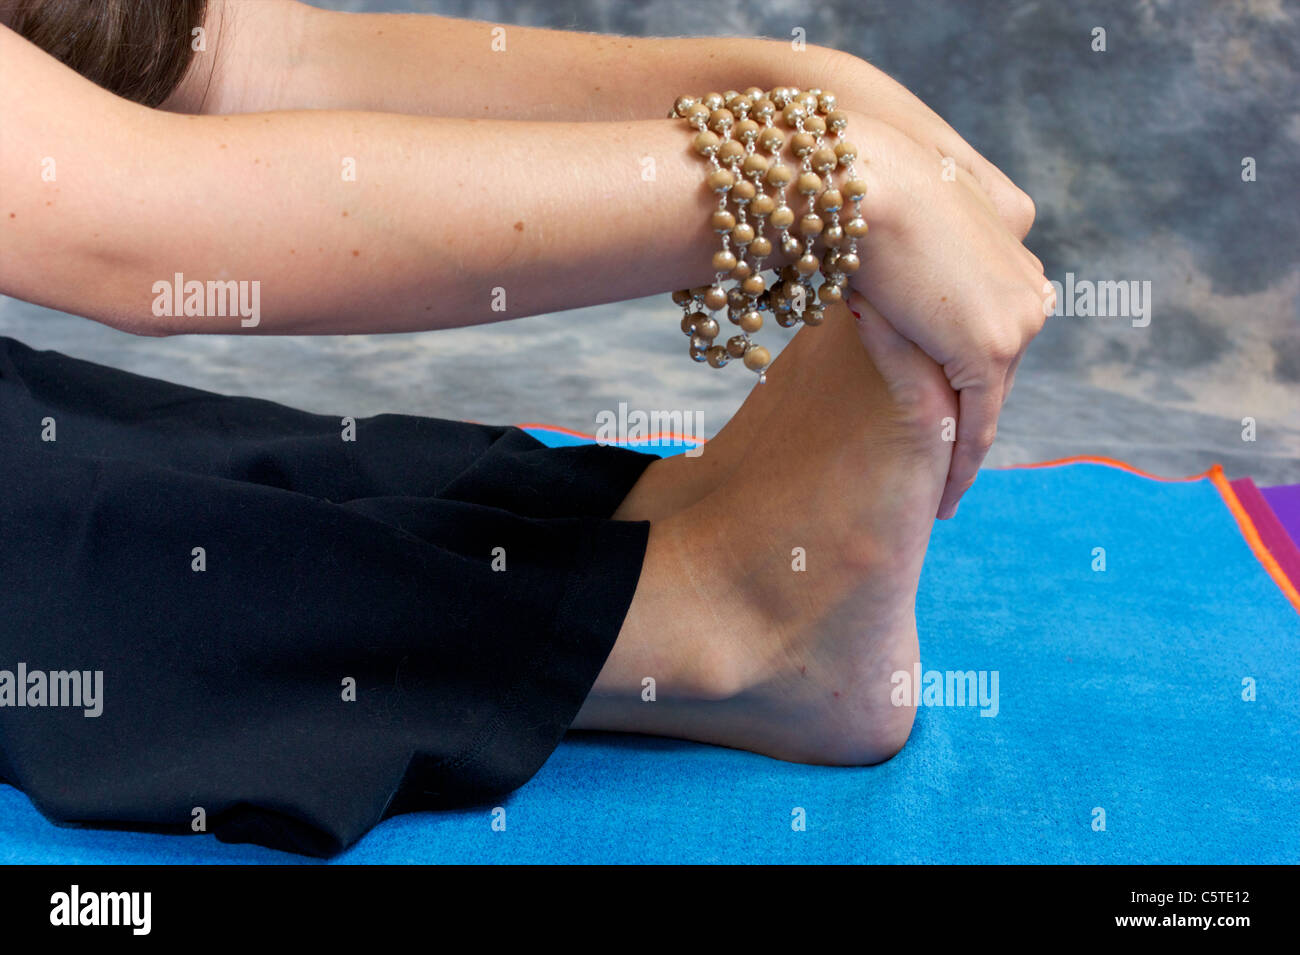 Close up of a woman's hands and feet as she bends over in a yogic forward fold or Paschimottasana on yoga mat - Stock Image